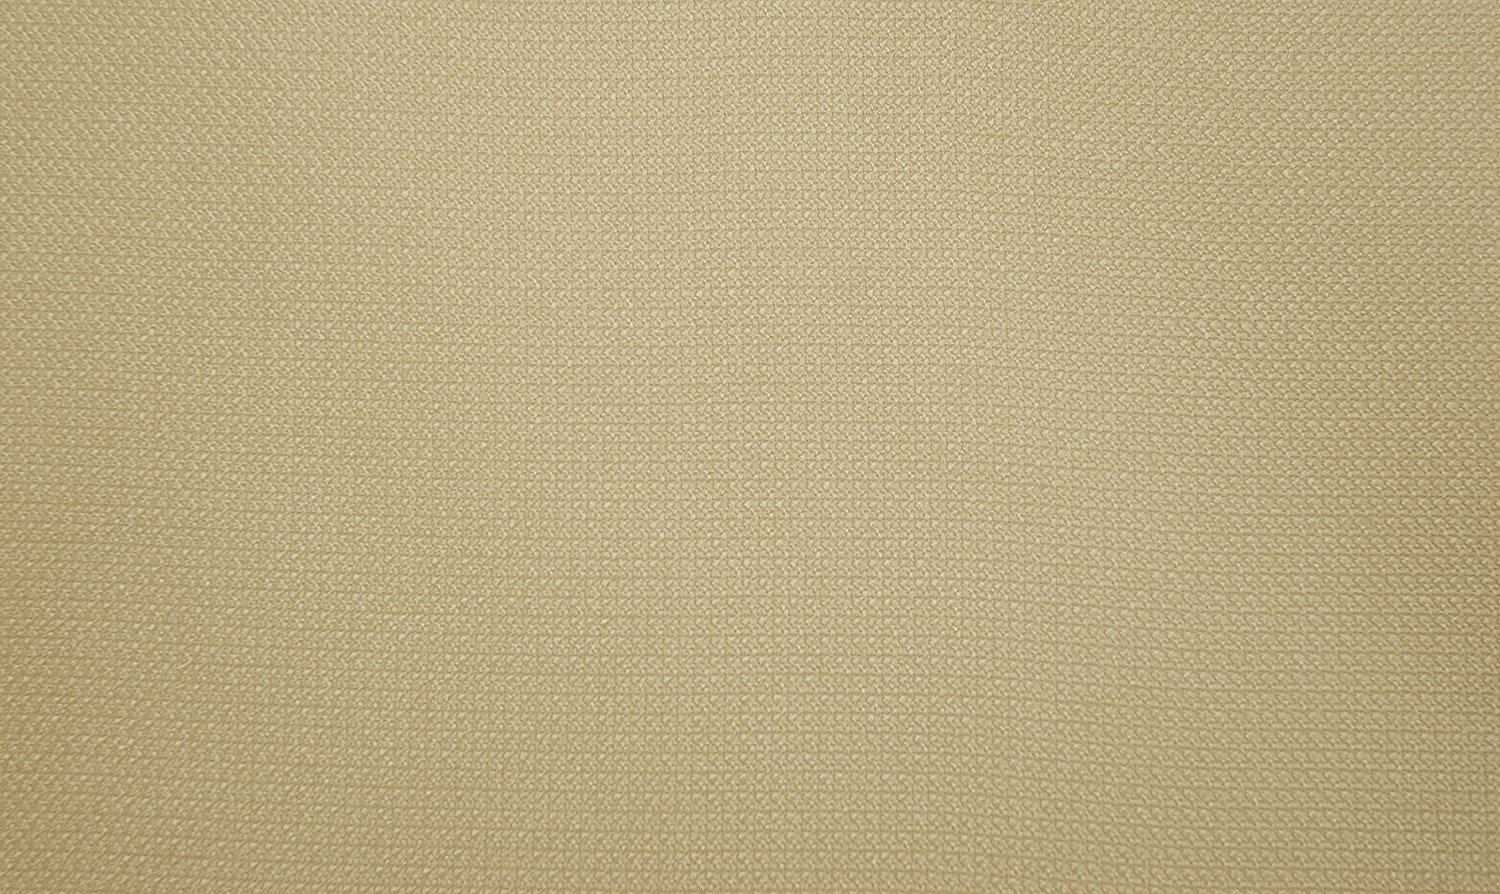 montego casual textured grommet curtain panel 48 x 84 yellow solid woven textured fabric by no 918